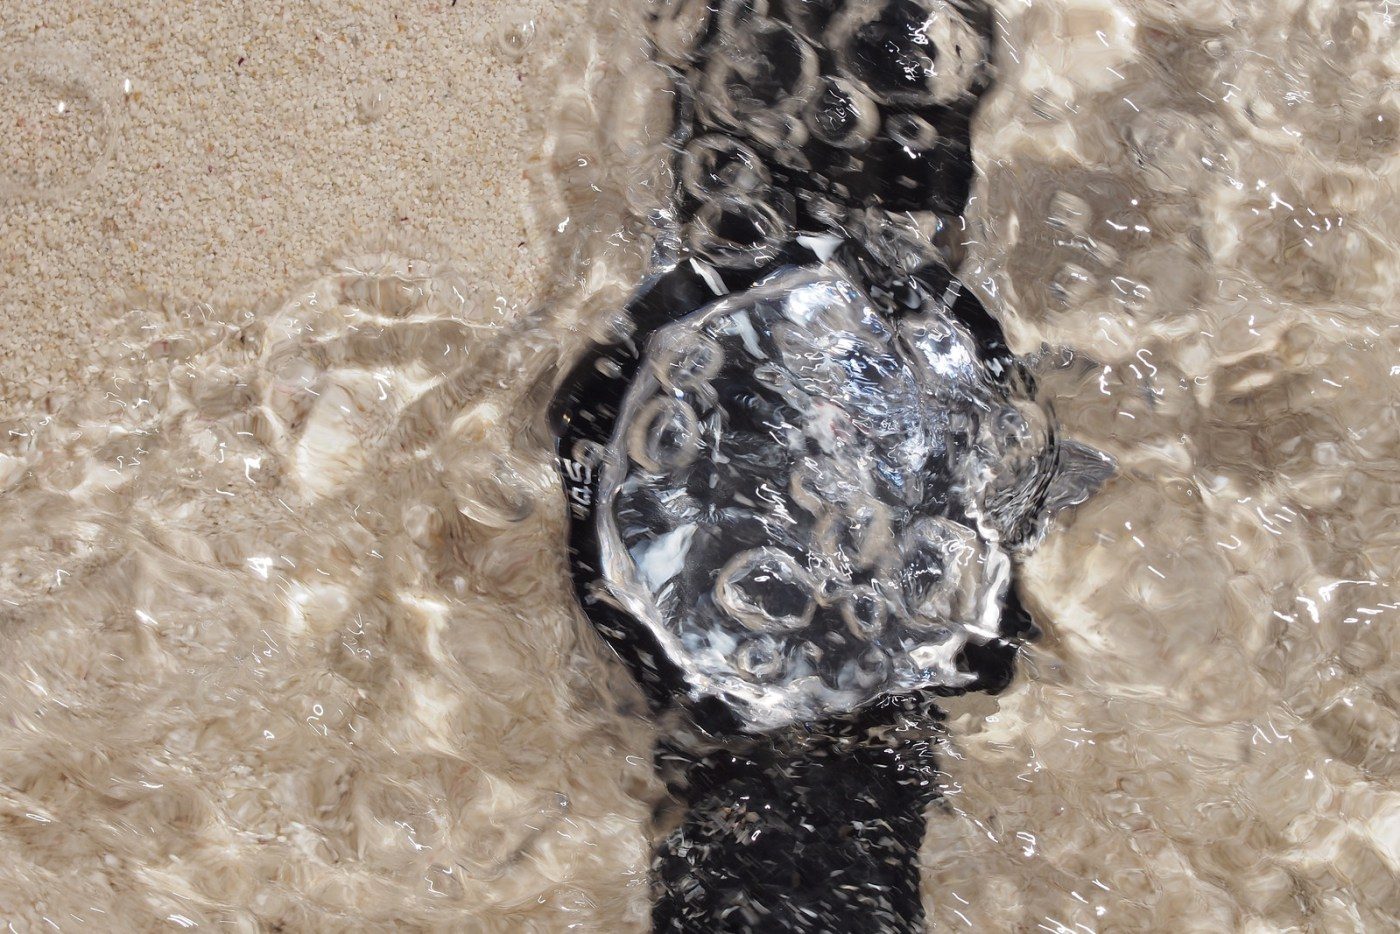 Jaeger-LeCoultre Deep Sea Chronograph underwater